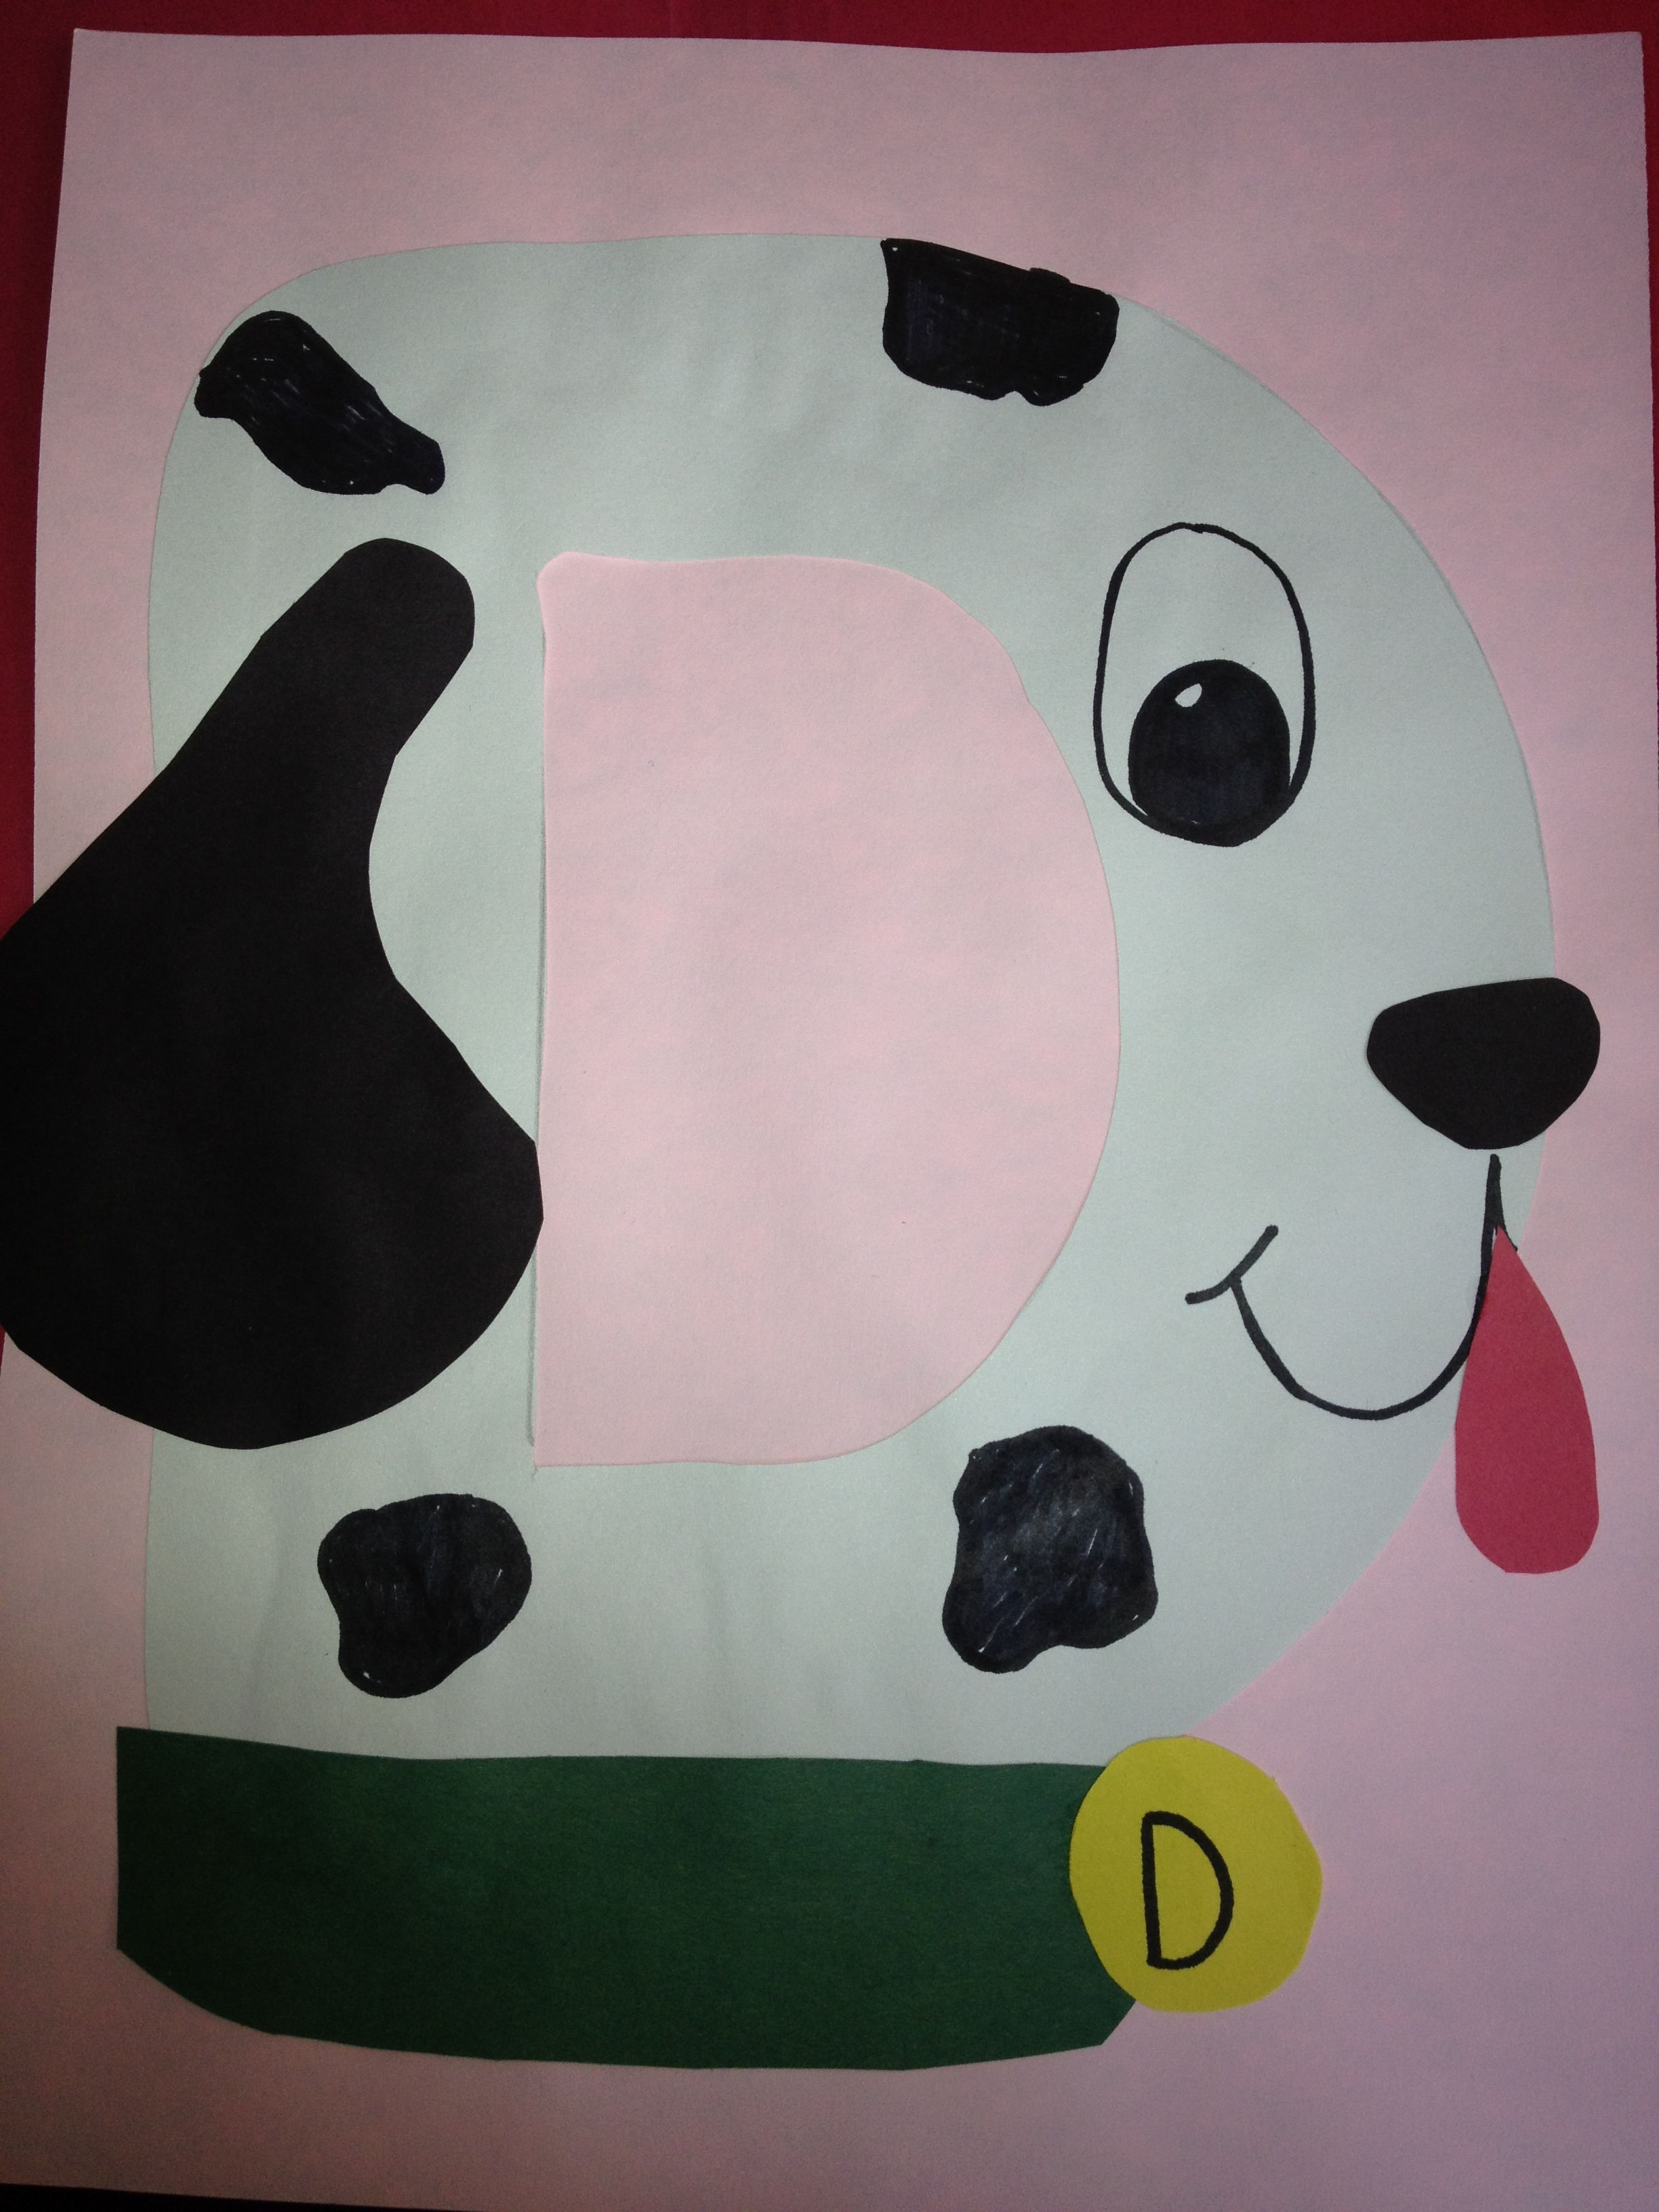 D is for Dog Dalmatian in Spanish My Style Pinterest